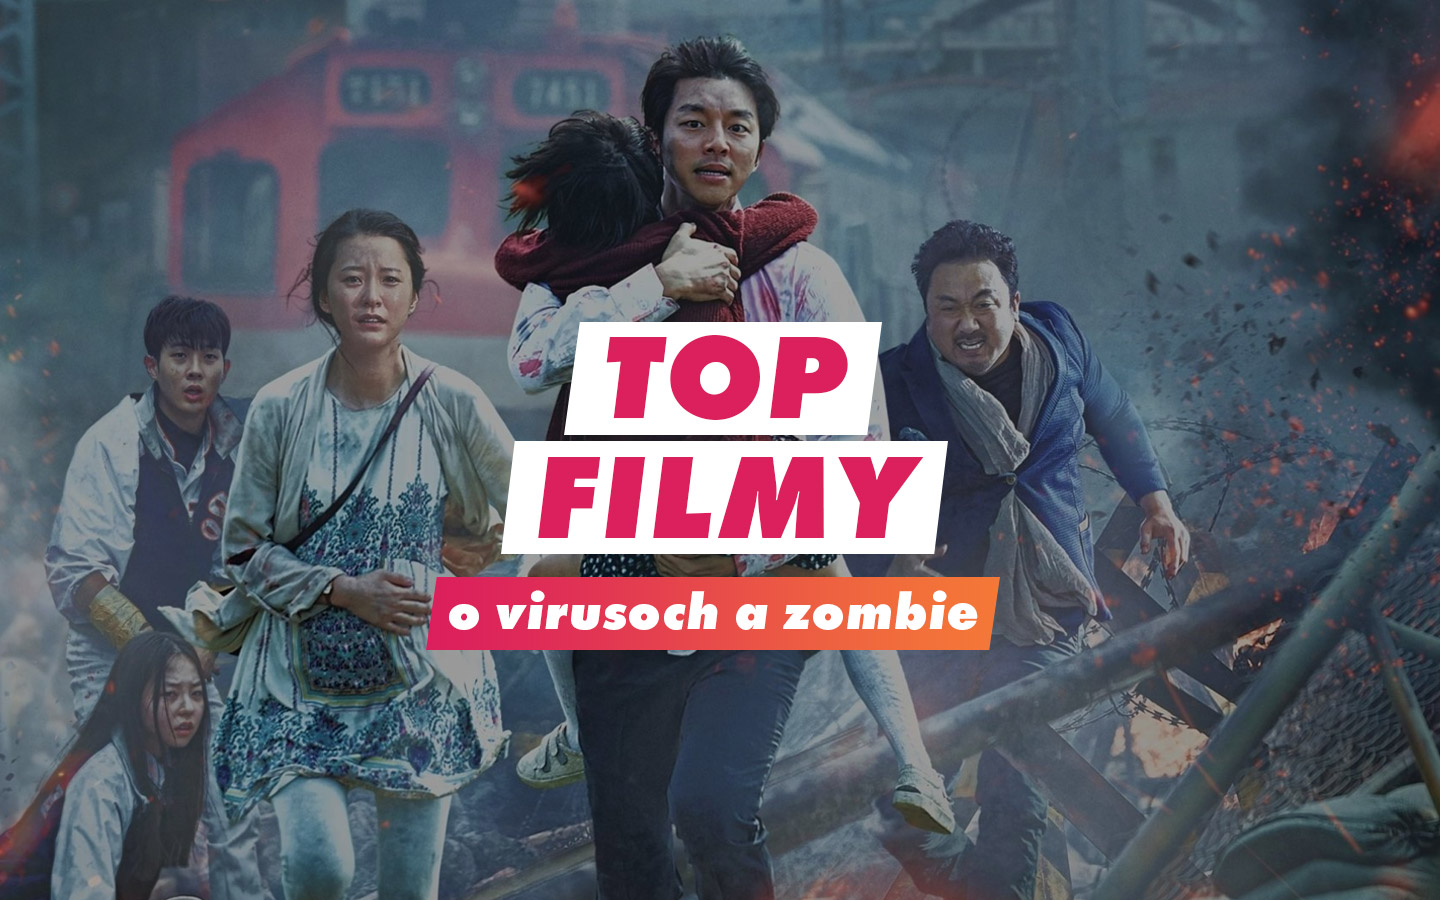 Top filmy o virusoch a zombie / Top 12